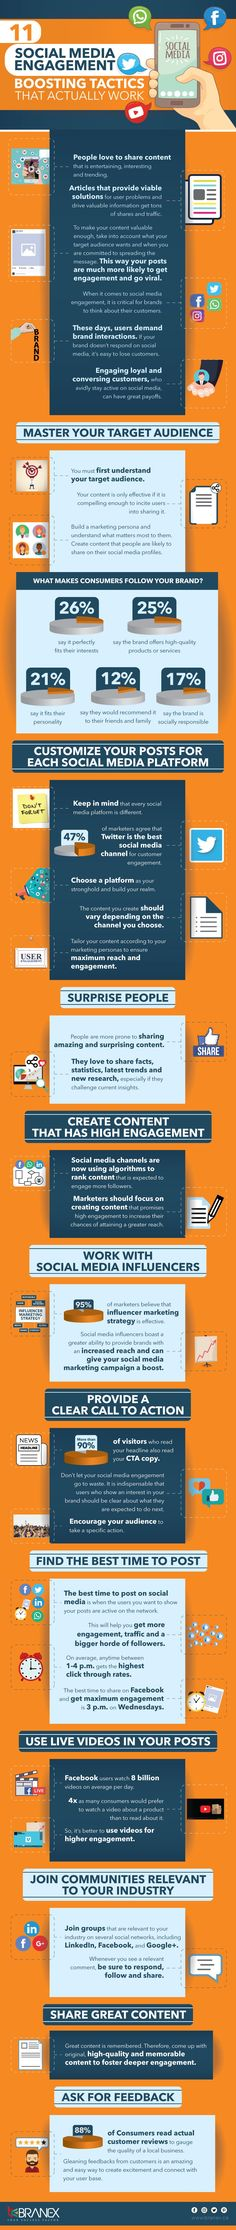 11 Social Media Engagement Boosting Tactics That Actually Work - #infographic